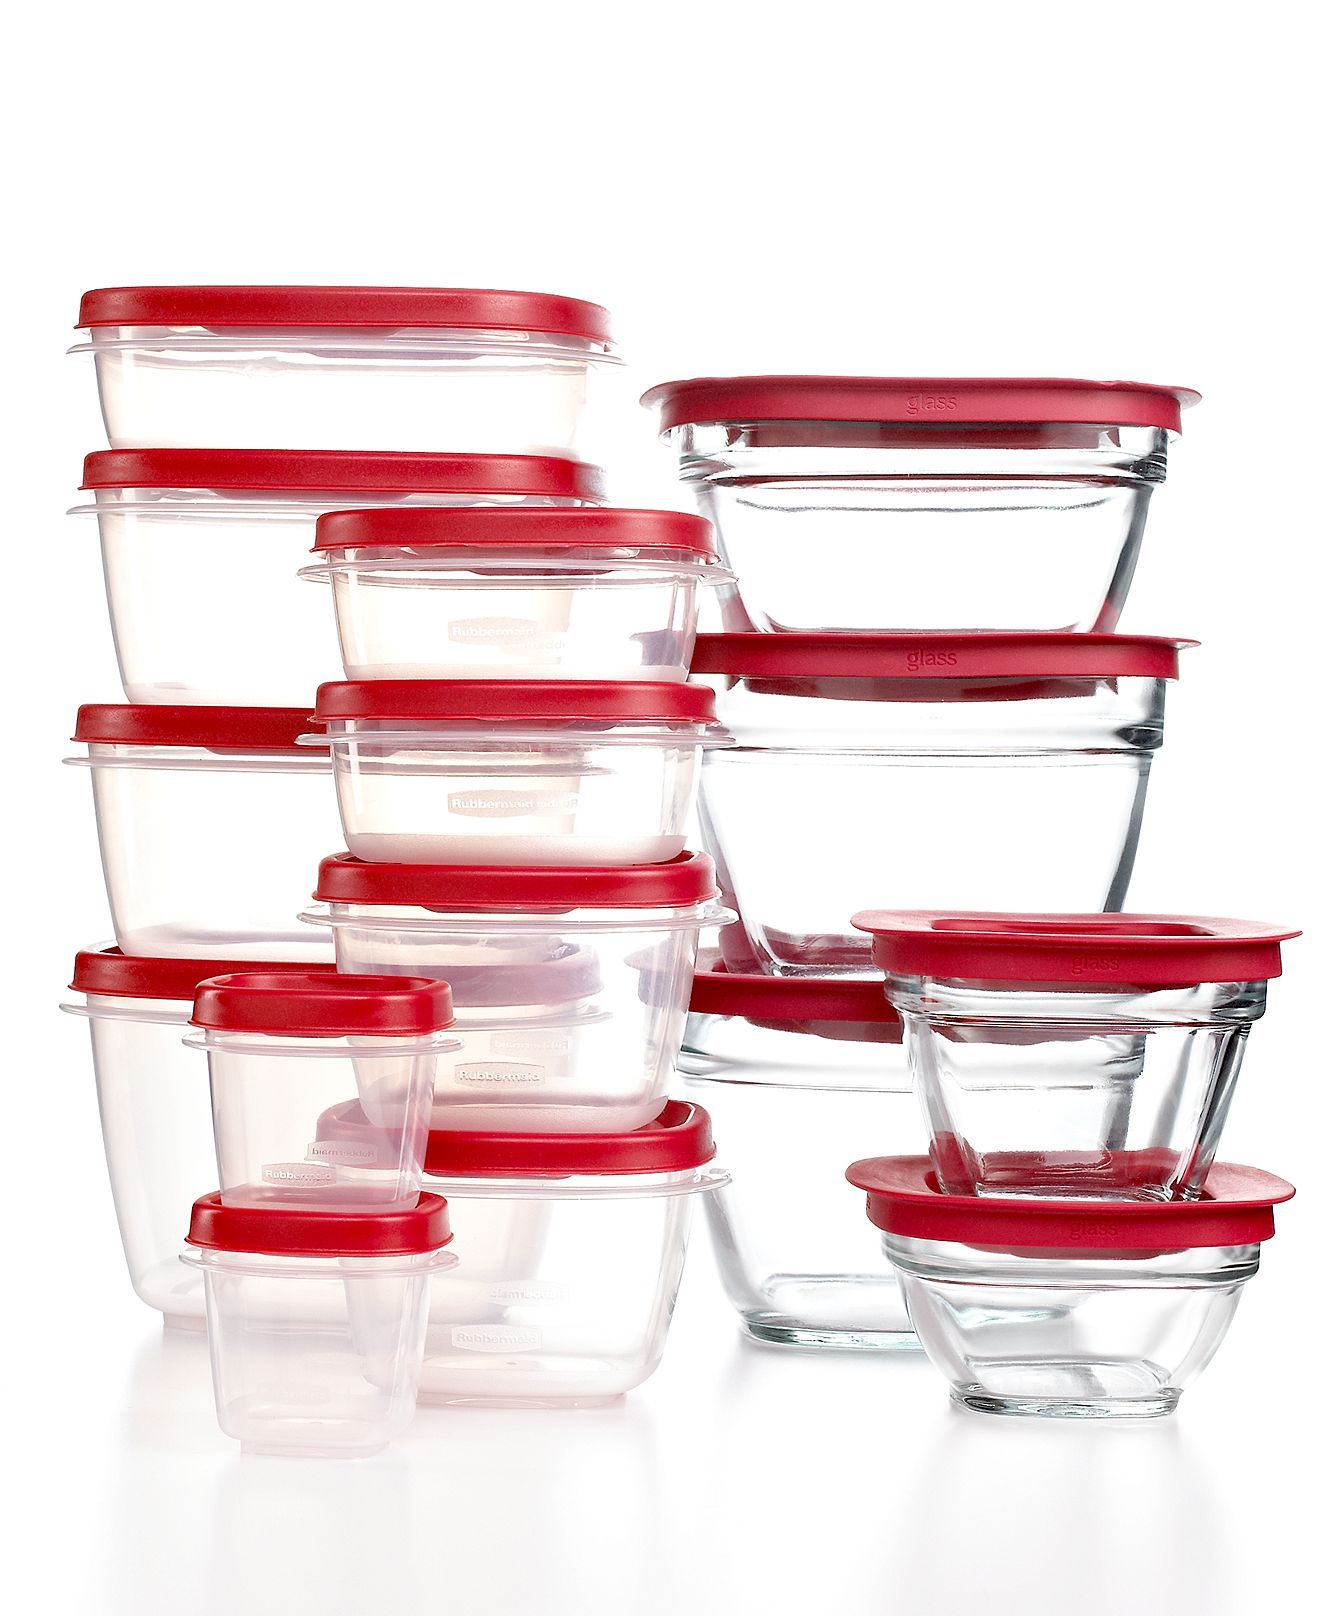 Glass Containers With Lids For Food Storage Enchanting For The New Kitchen  No More #toxic Plastic Food Storage Design Inspiration